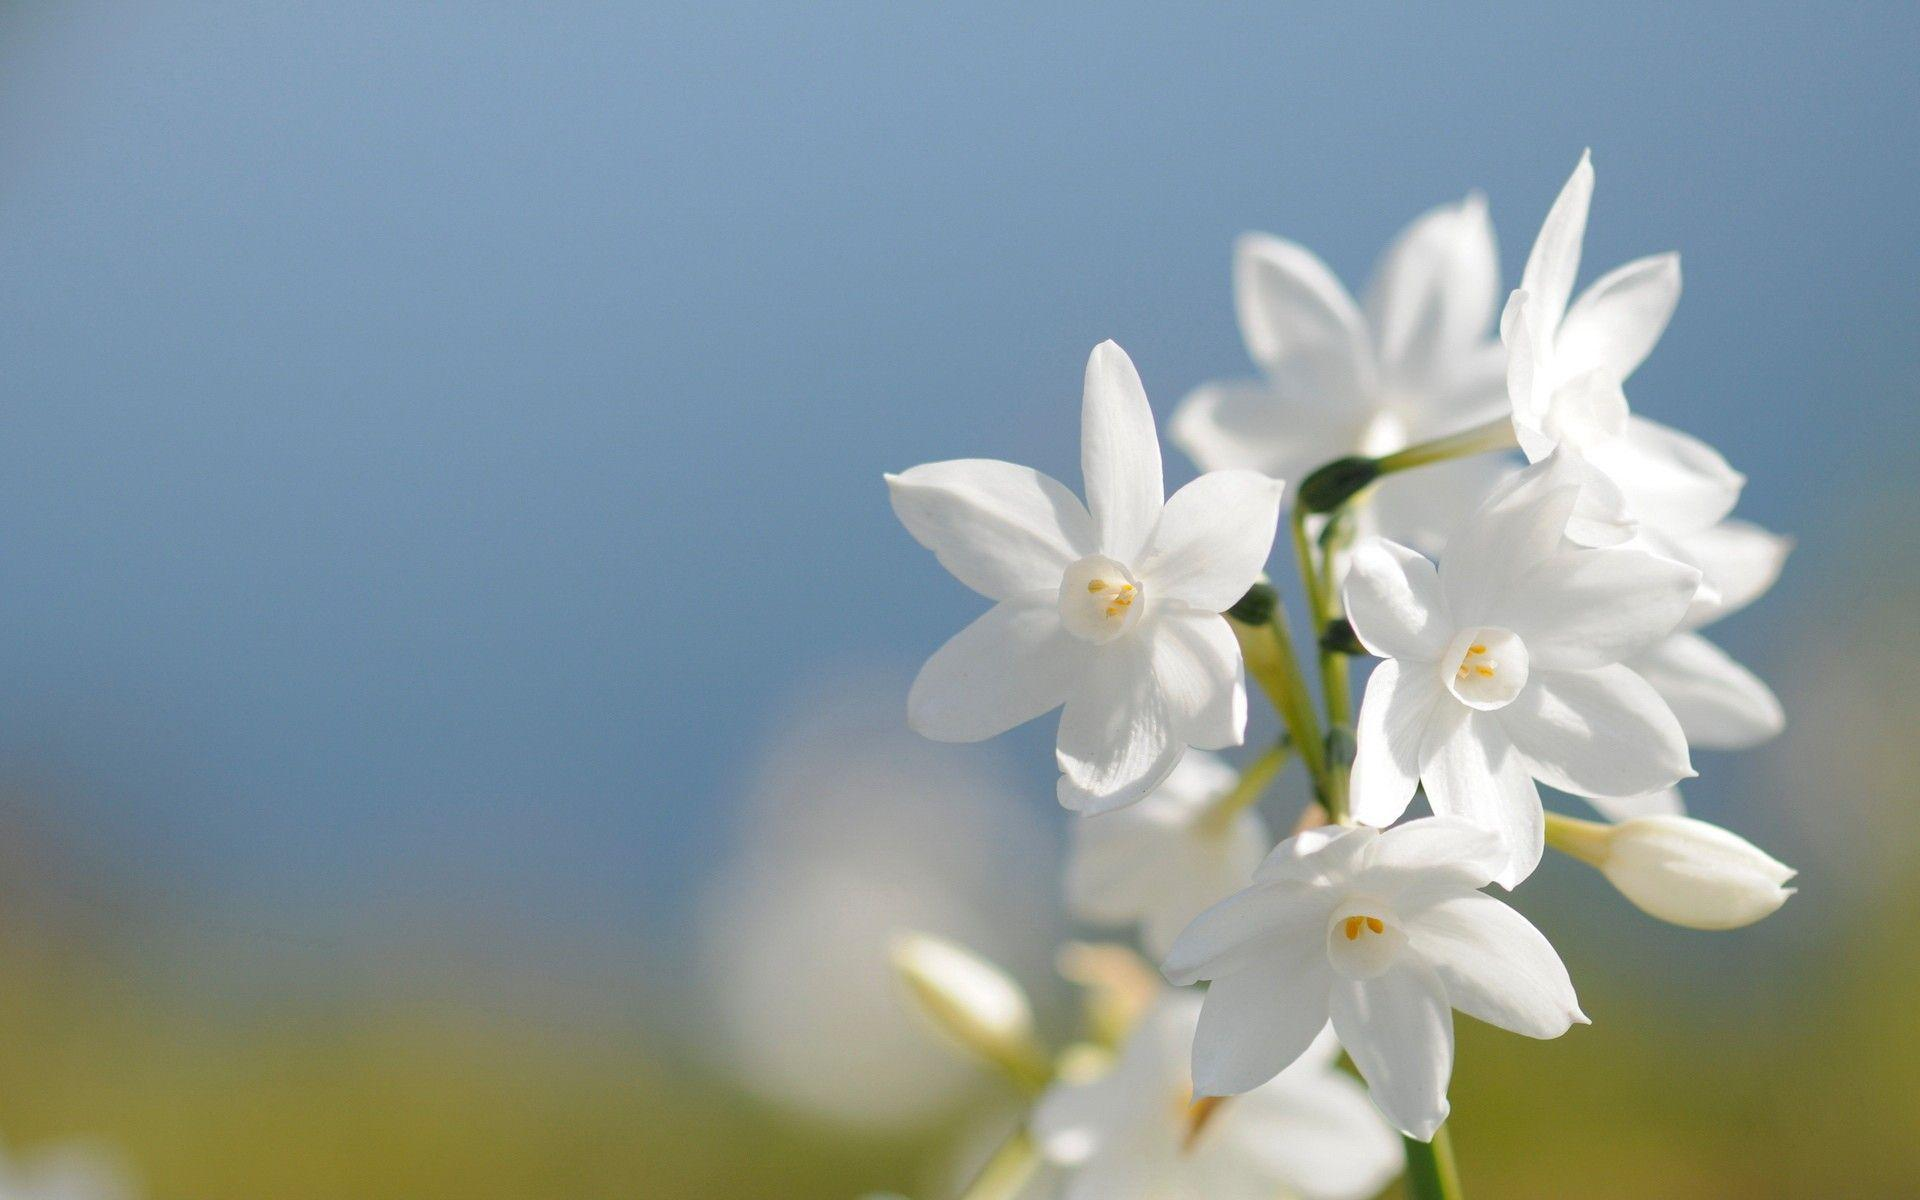 Jasmine flower wallpapers wallpaper cave beautiful jasmine flower hd wallappers izmirmasajfo